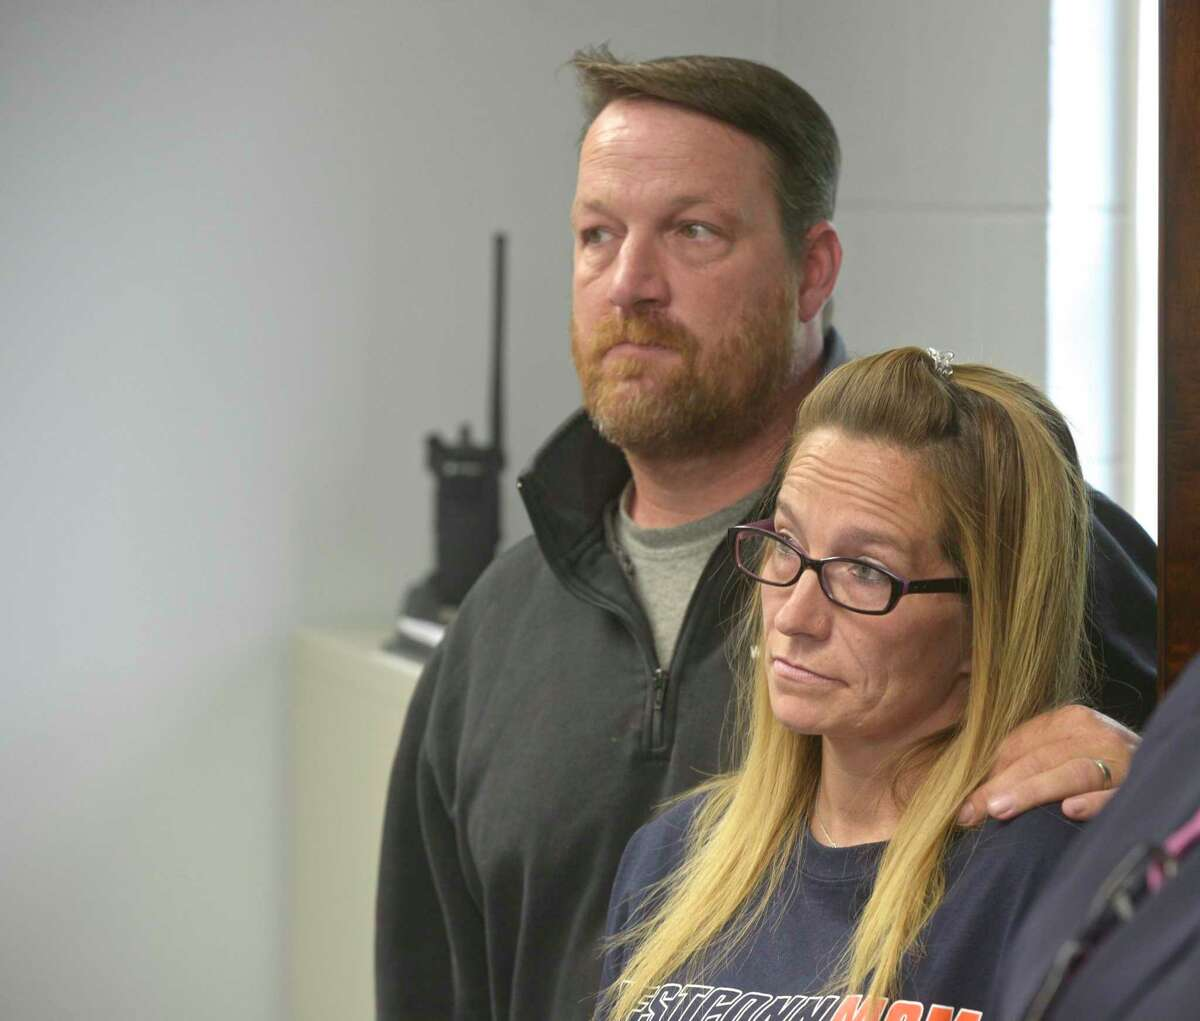 Tracey Morrissey and Tony Morrissey parents of Brian Cody Waldron attend a press conference where New Milford Police Chief Spencer Cerrito and Mayor Pete Bass announce their plans to combat the towns opioid crisis. Friday afternoon, September 6, 2019, in New Milford, Conn. Waldron died this August from a drug overdose.